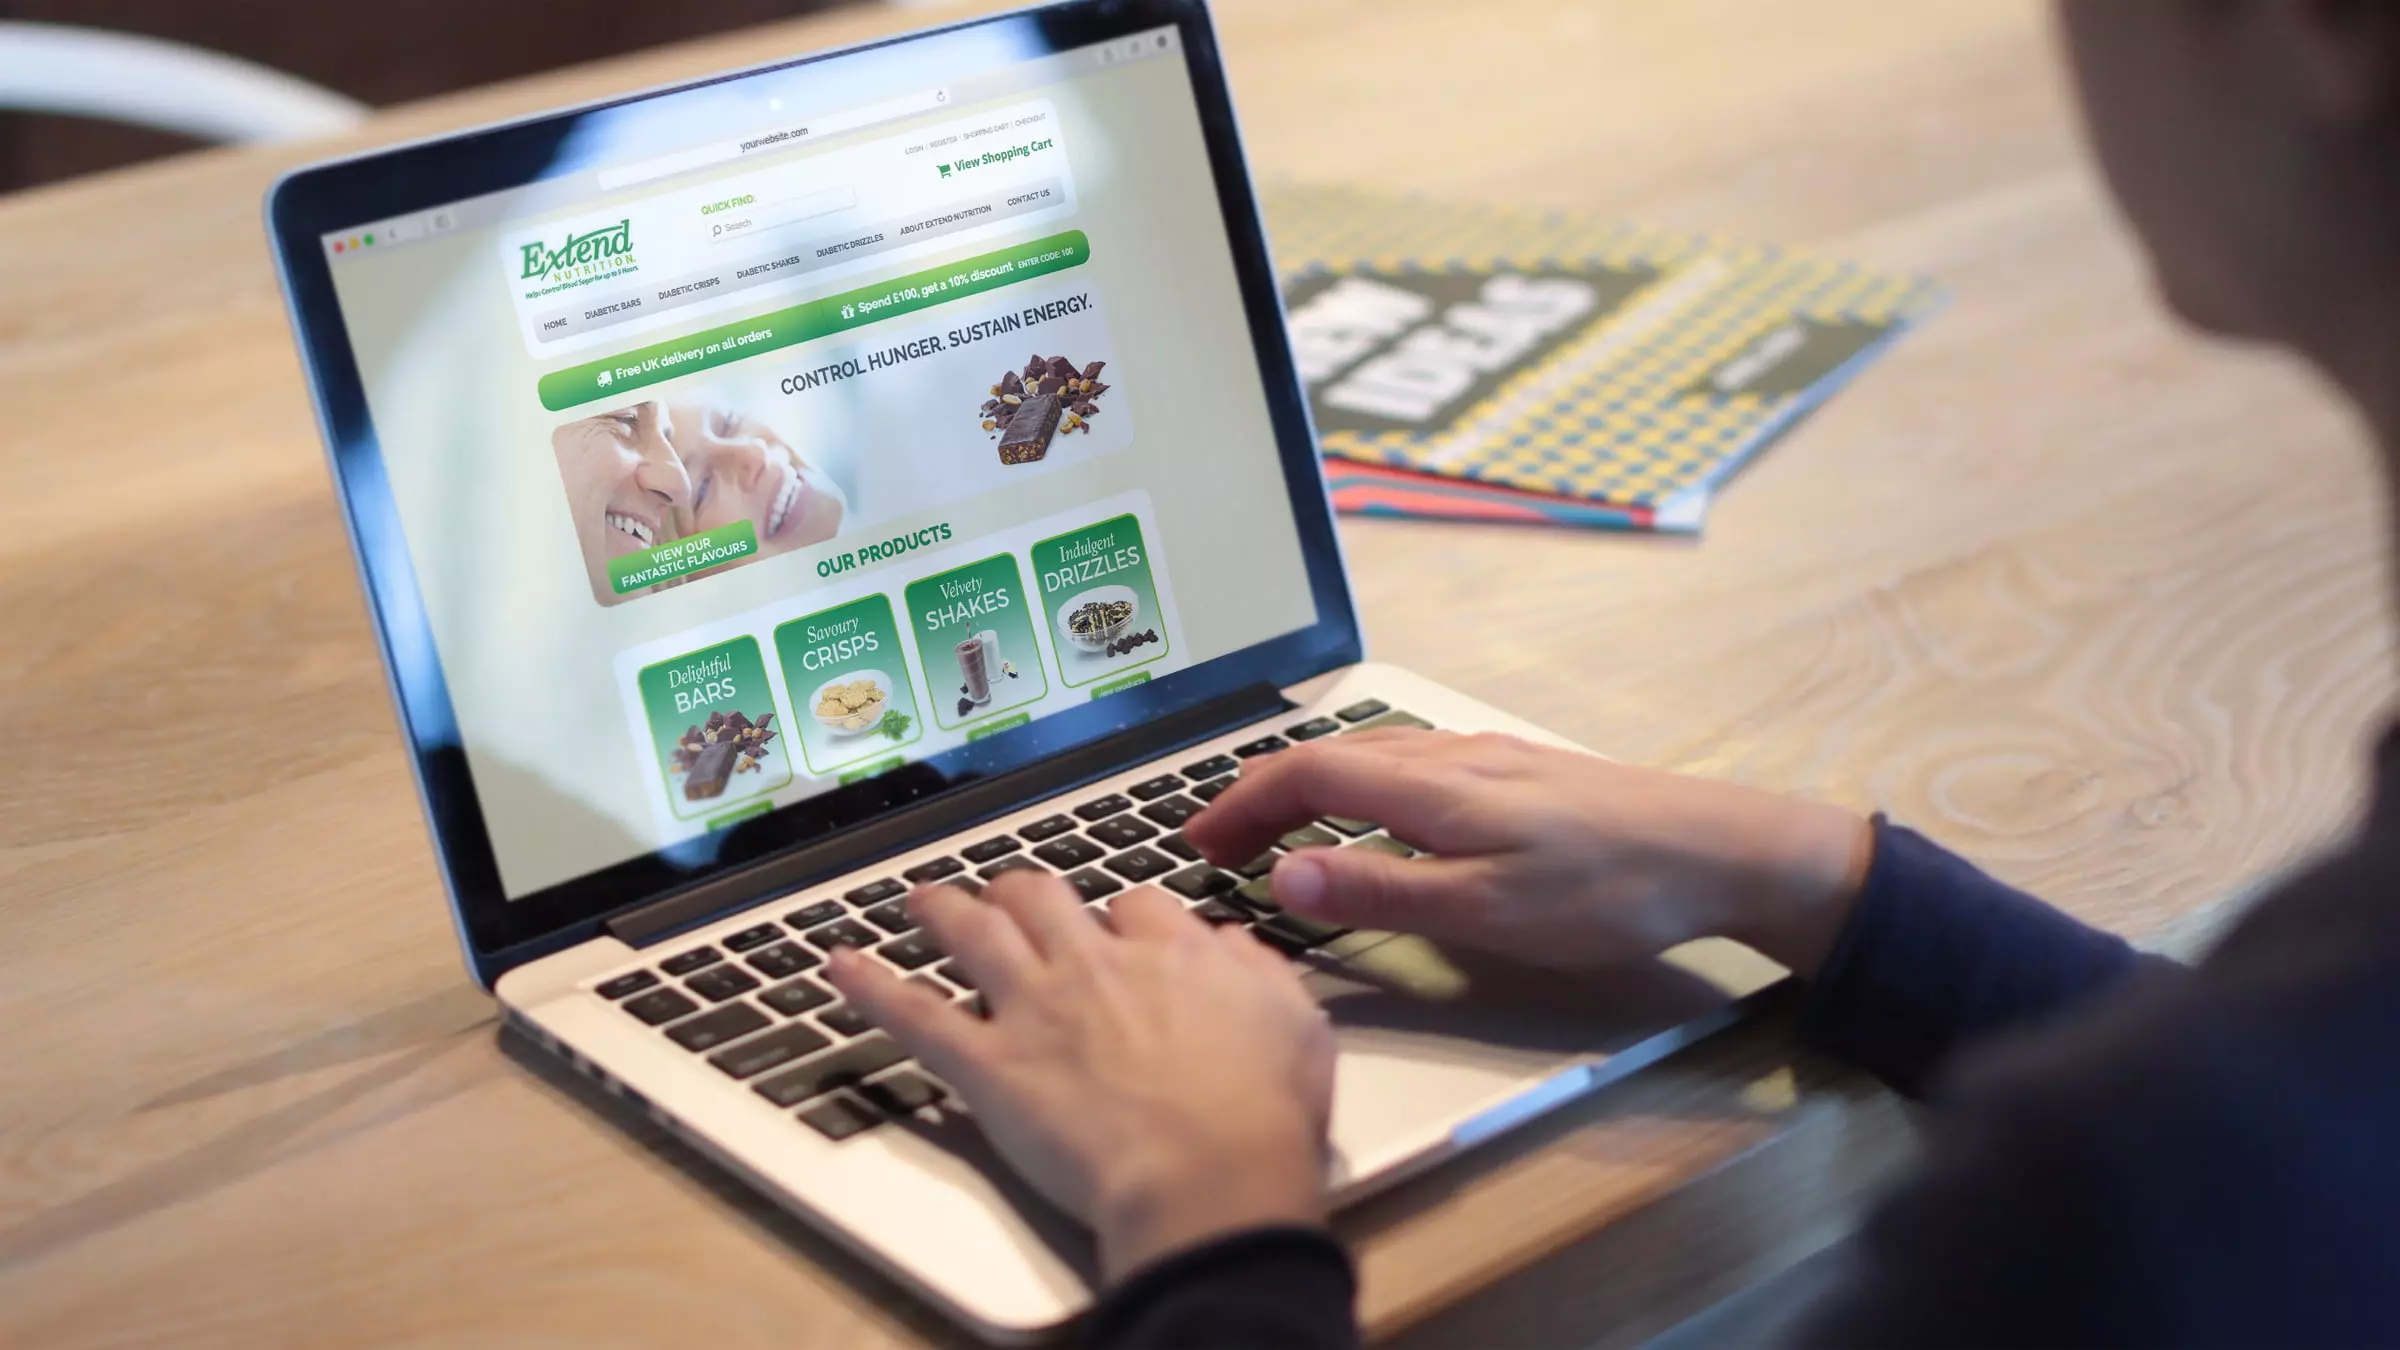 Diabetic Snacks website being viewed by person on a laptop